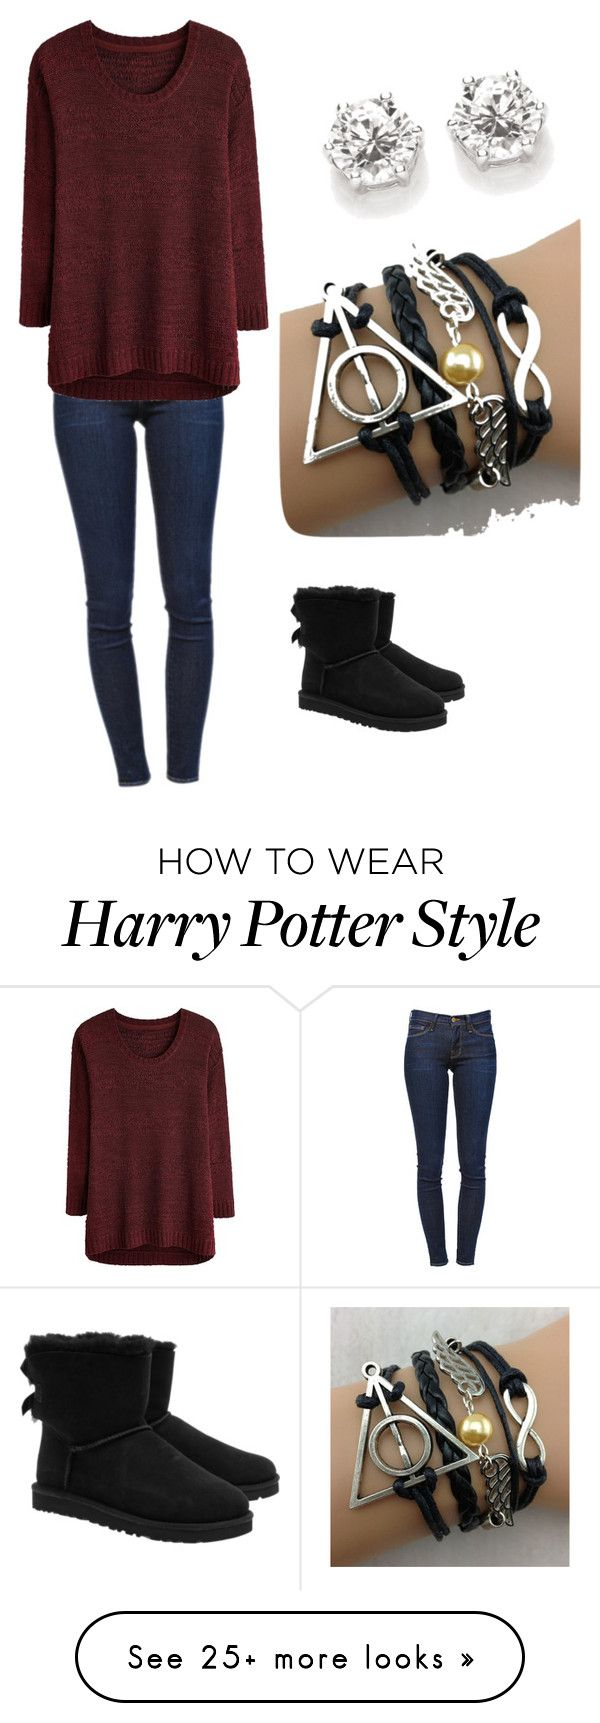 """Untitled #1"" by sarahgullion on Polyvore featuring Frame Denim and UGG Australia"